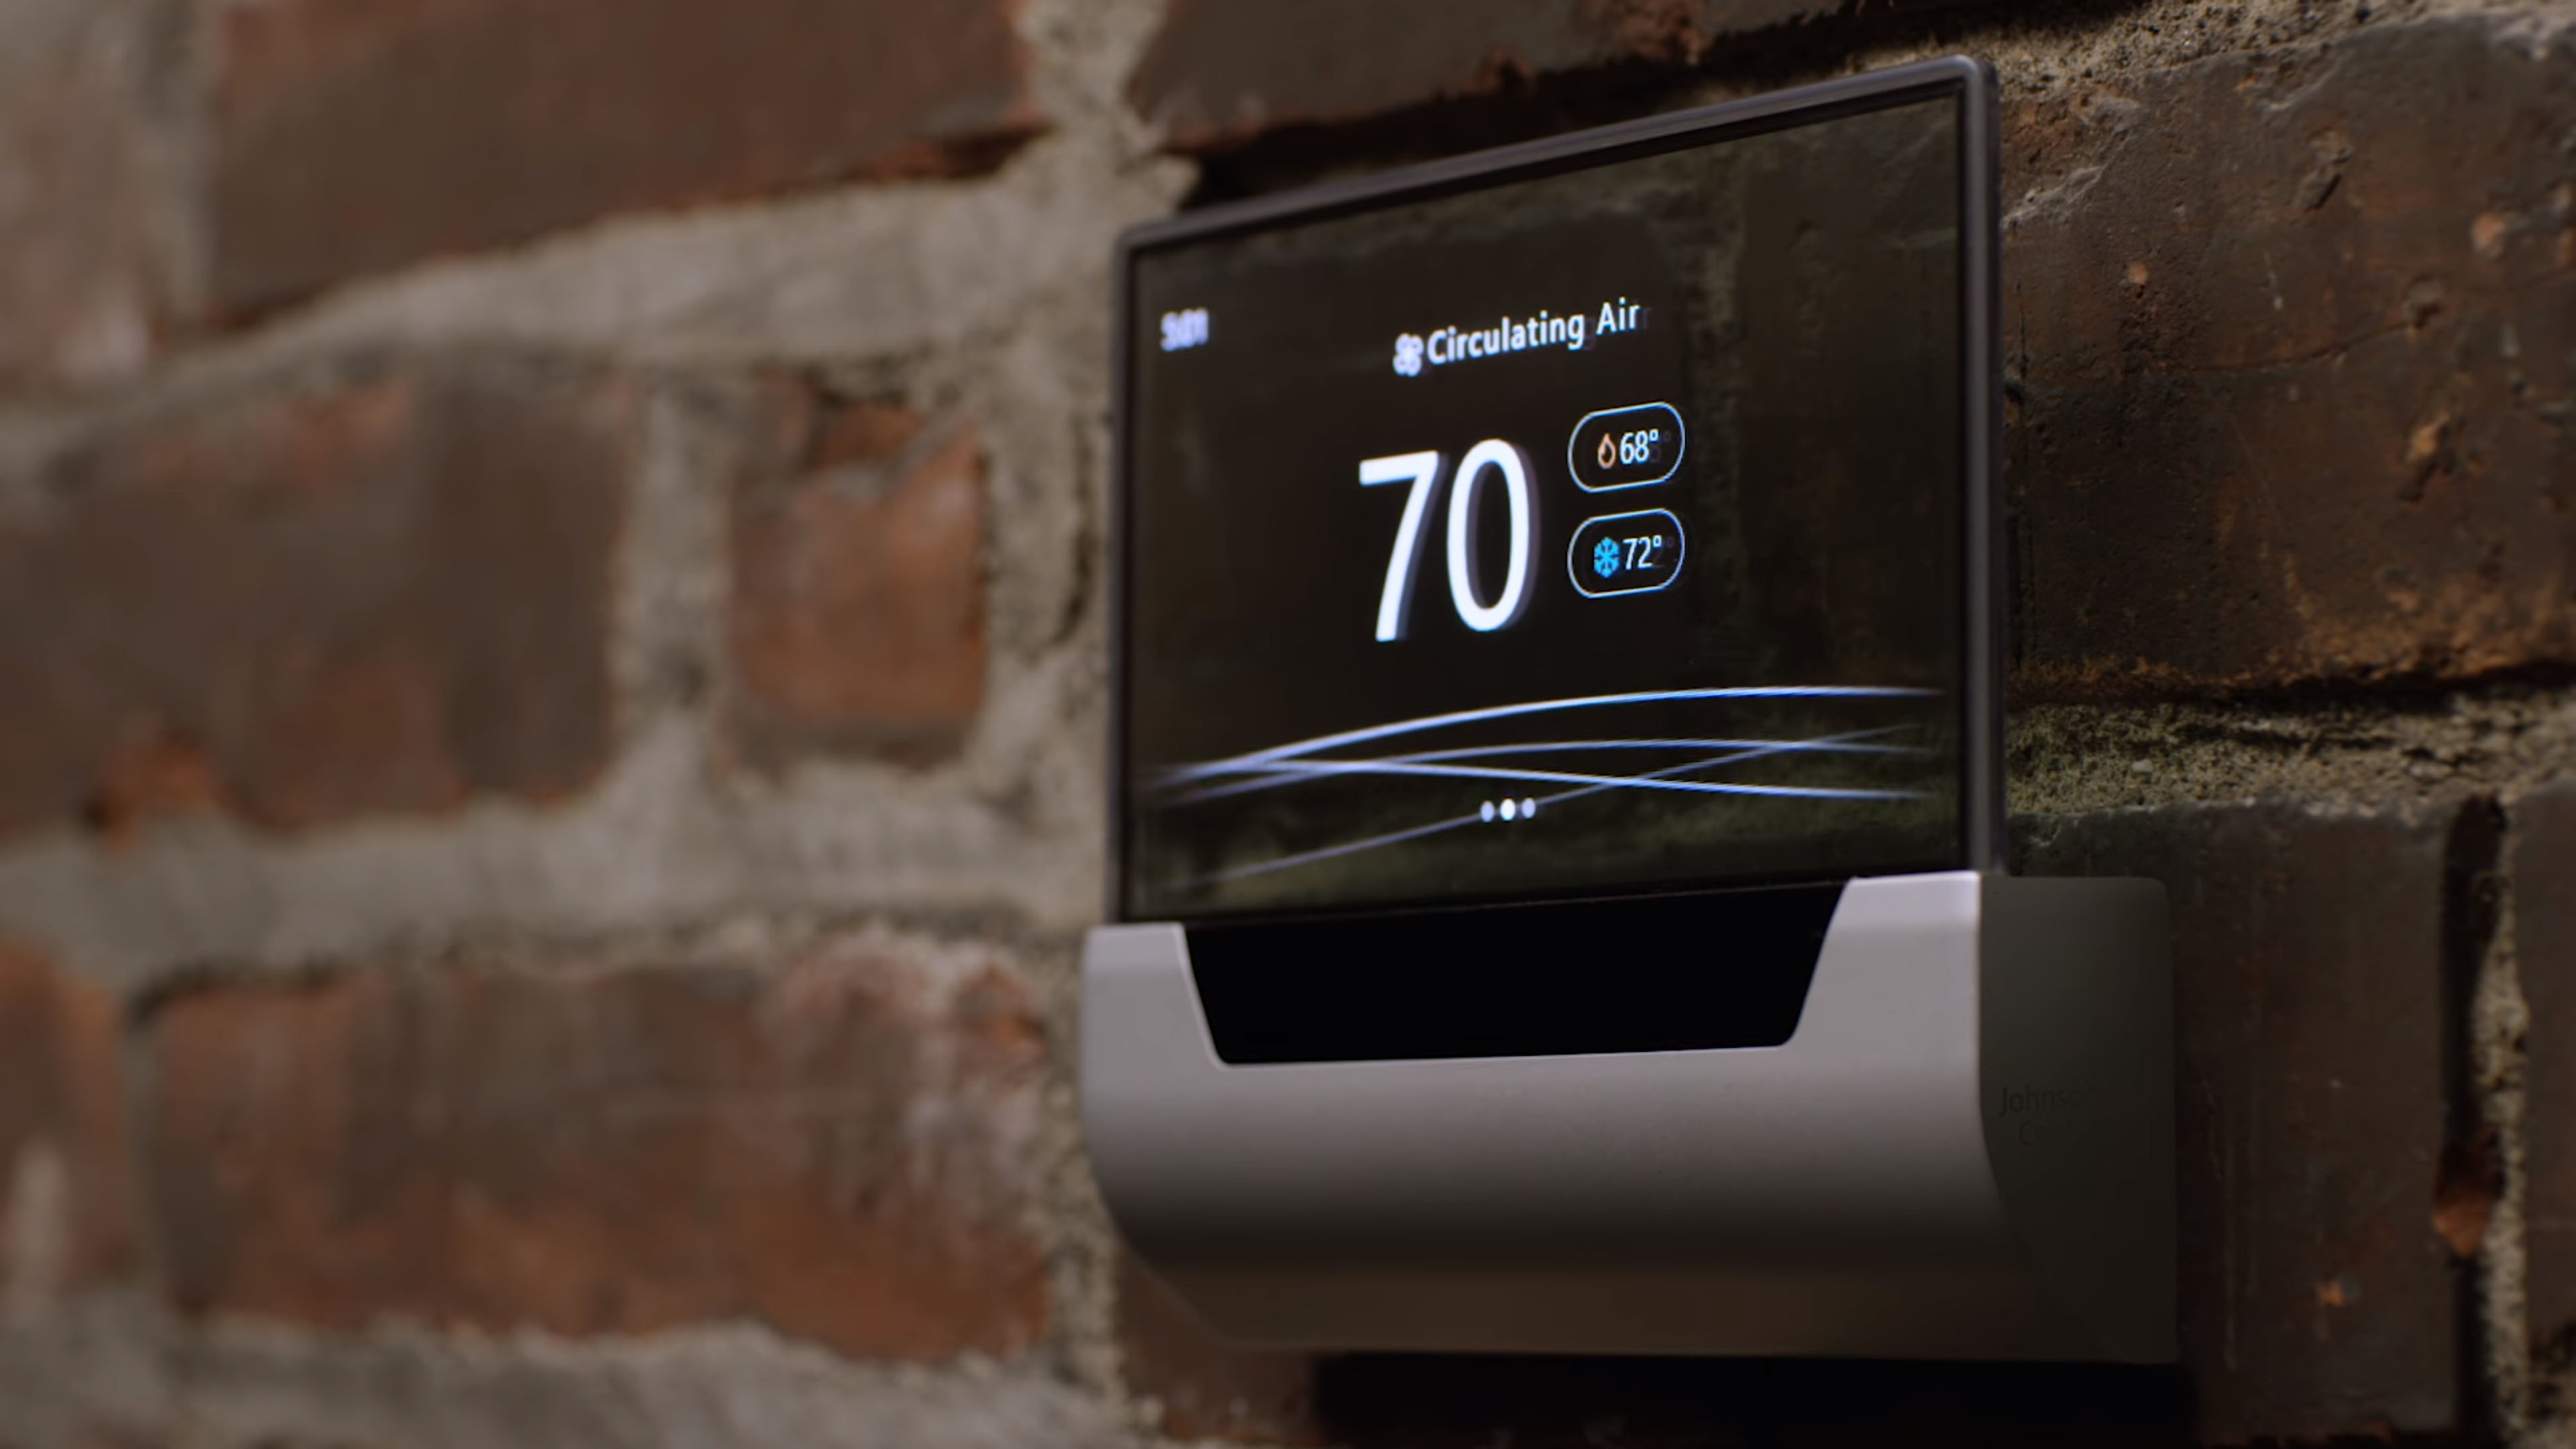 Microsoft unveils pre-order information on the Windows 10 GLAS thermostat